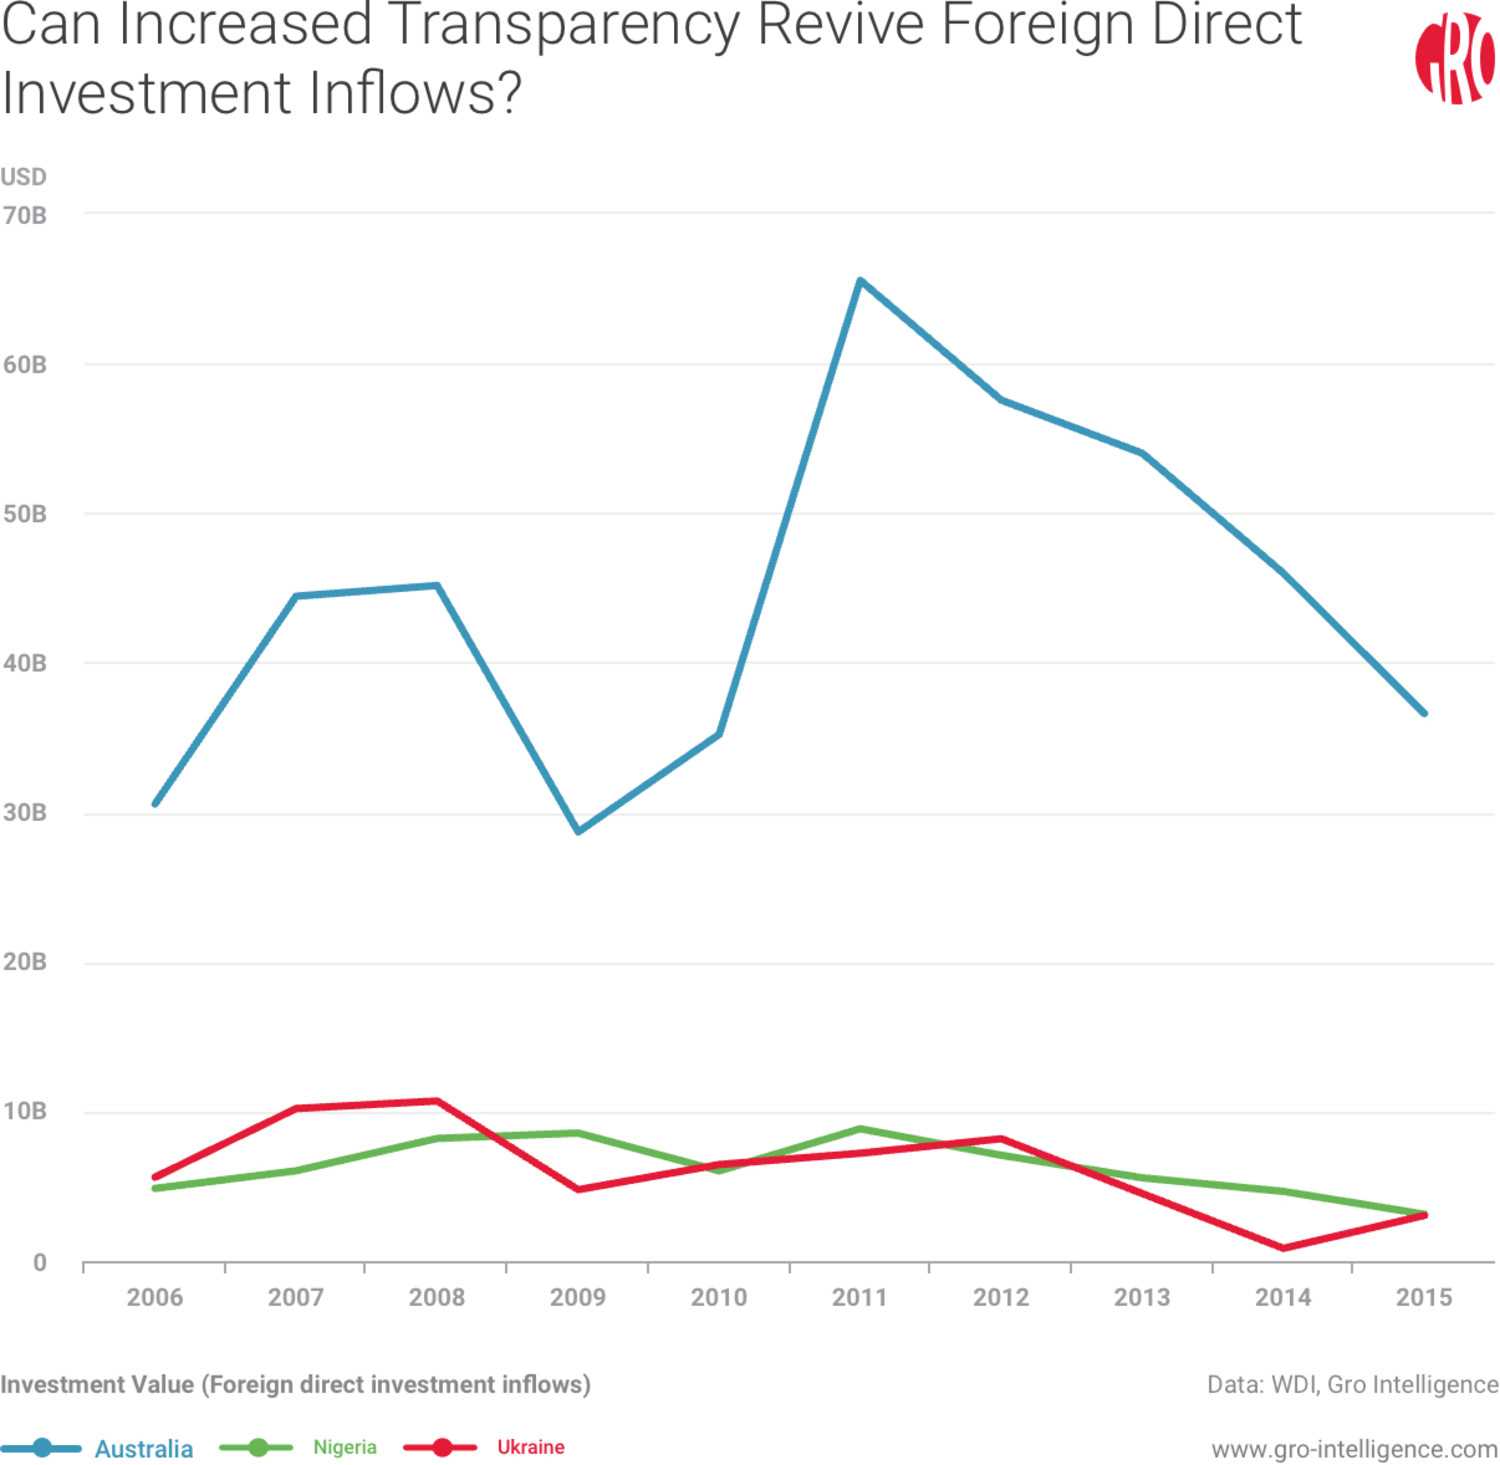 Can Increased Transparency Revive Foreign Direct Investment Inflows?